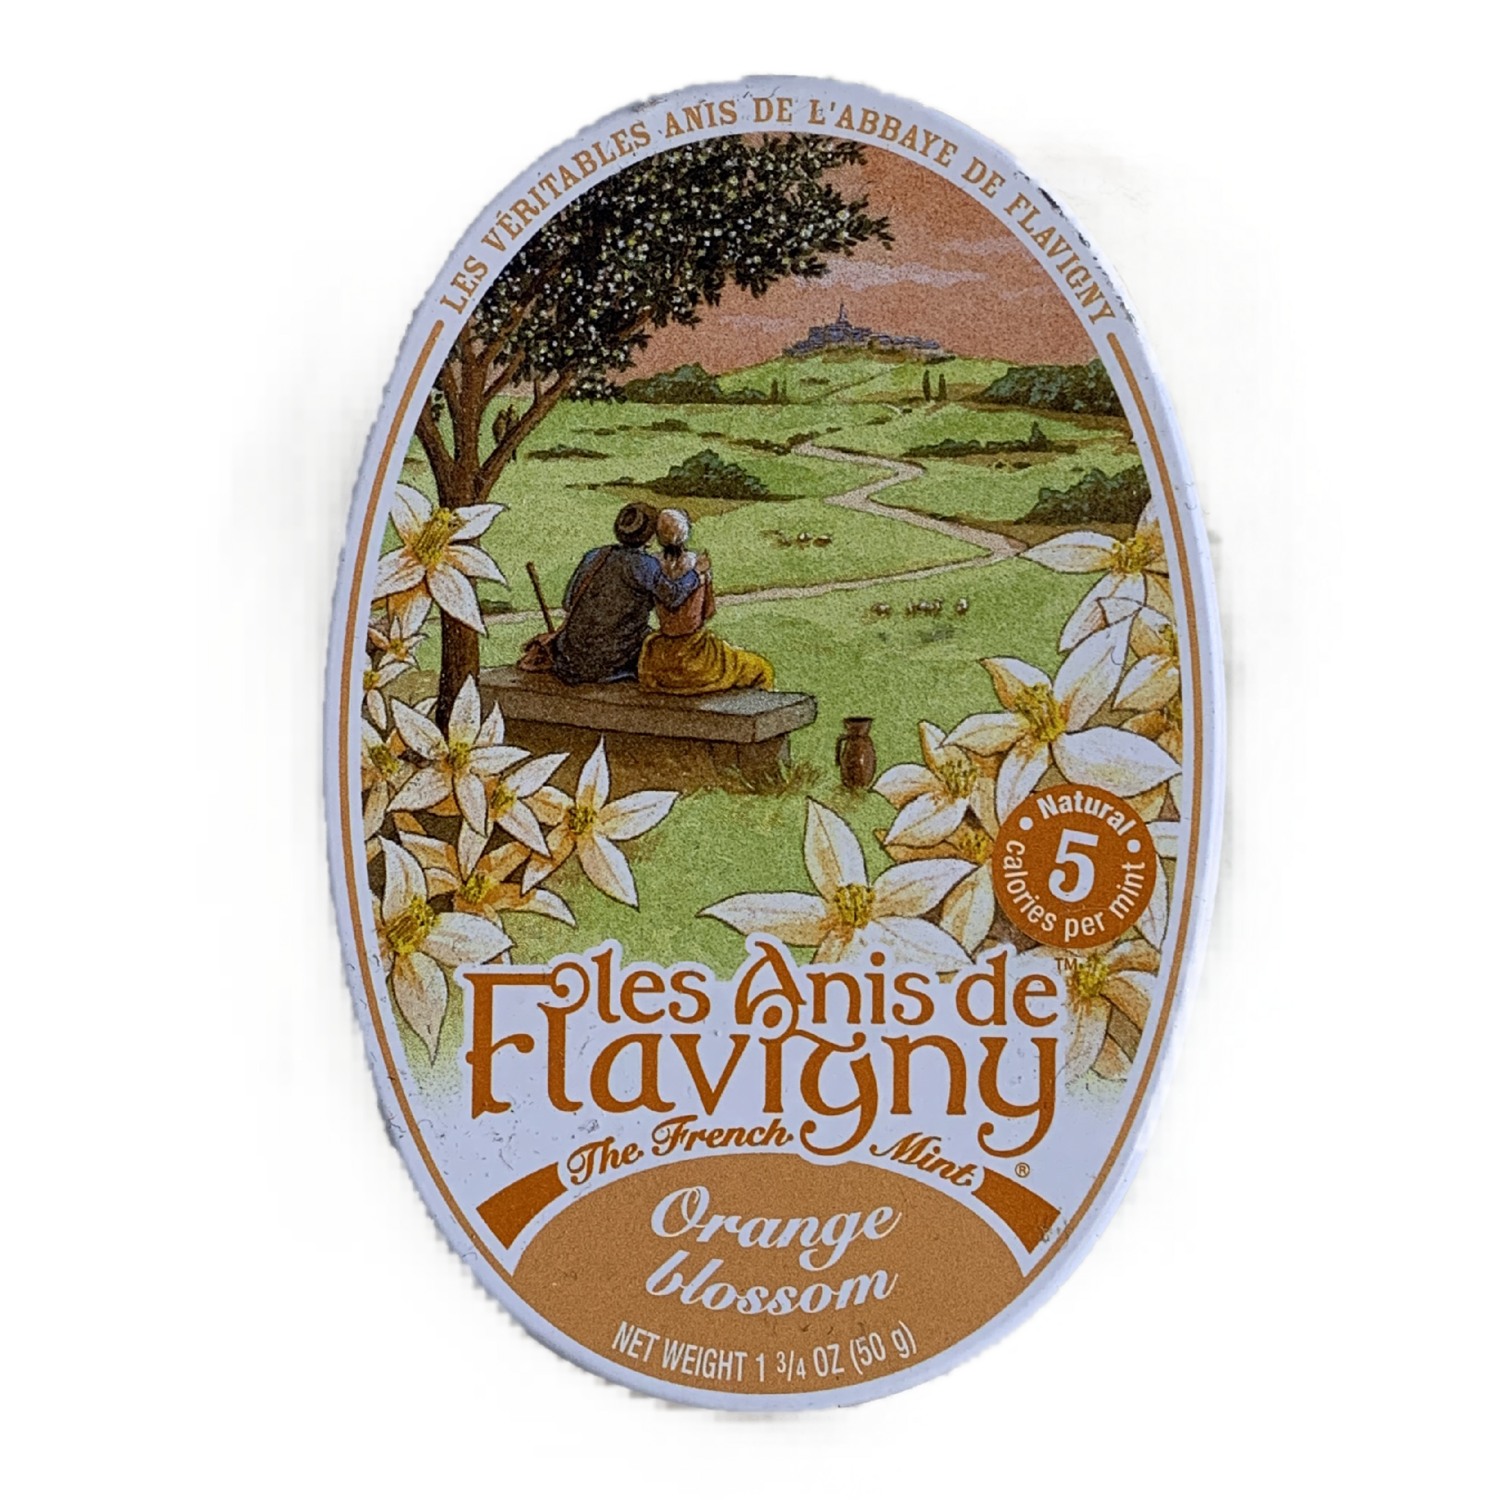 anis Flavigny Orange blossom